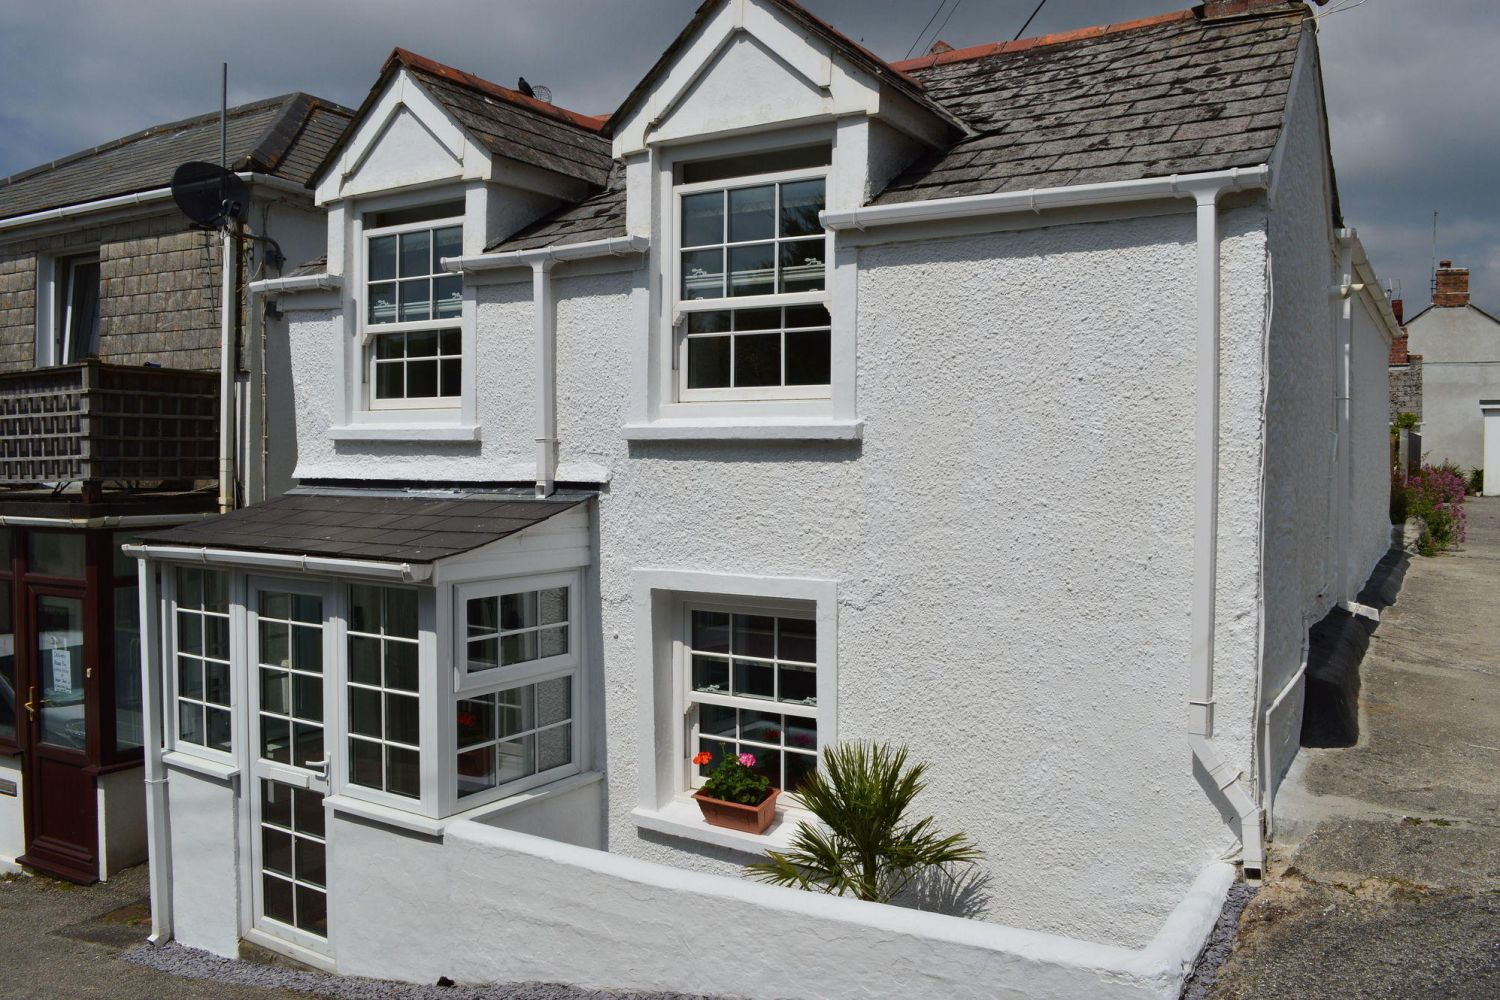 Trefusis - Porthleven Holiday Cottages